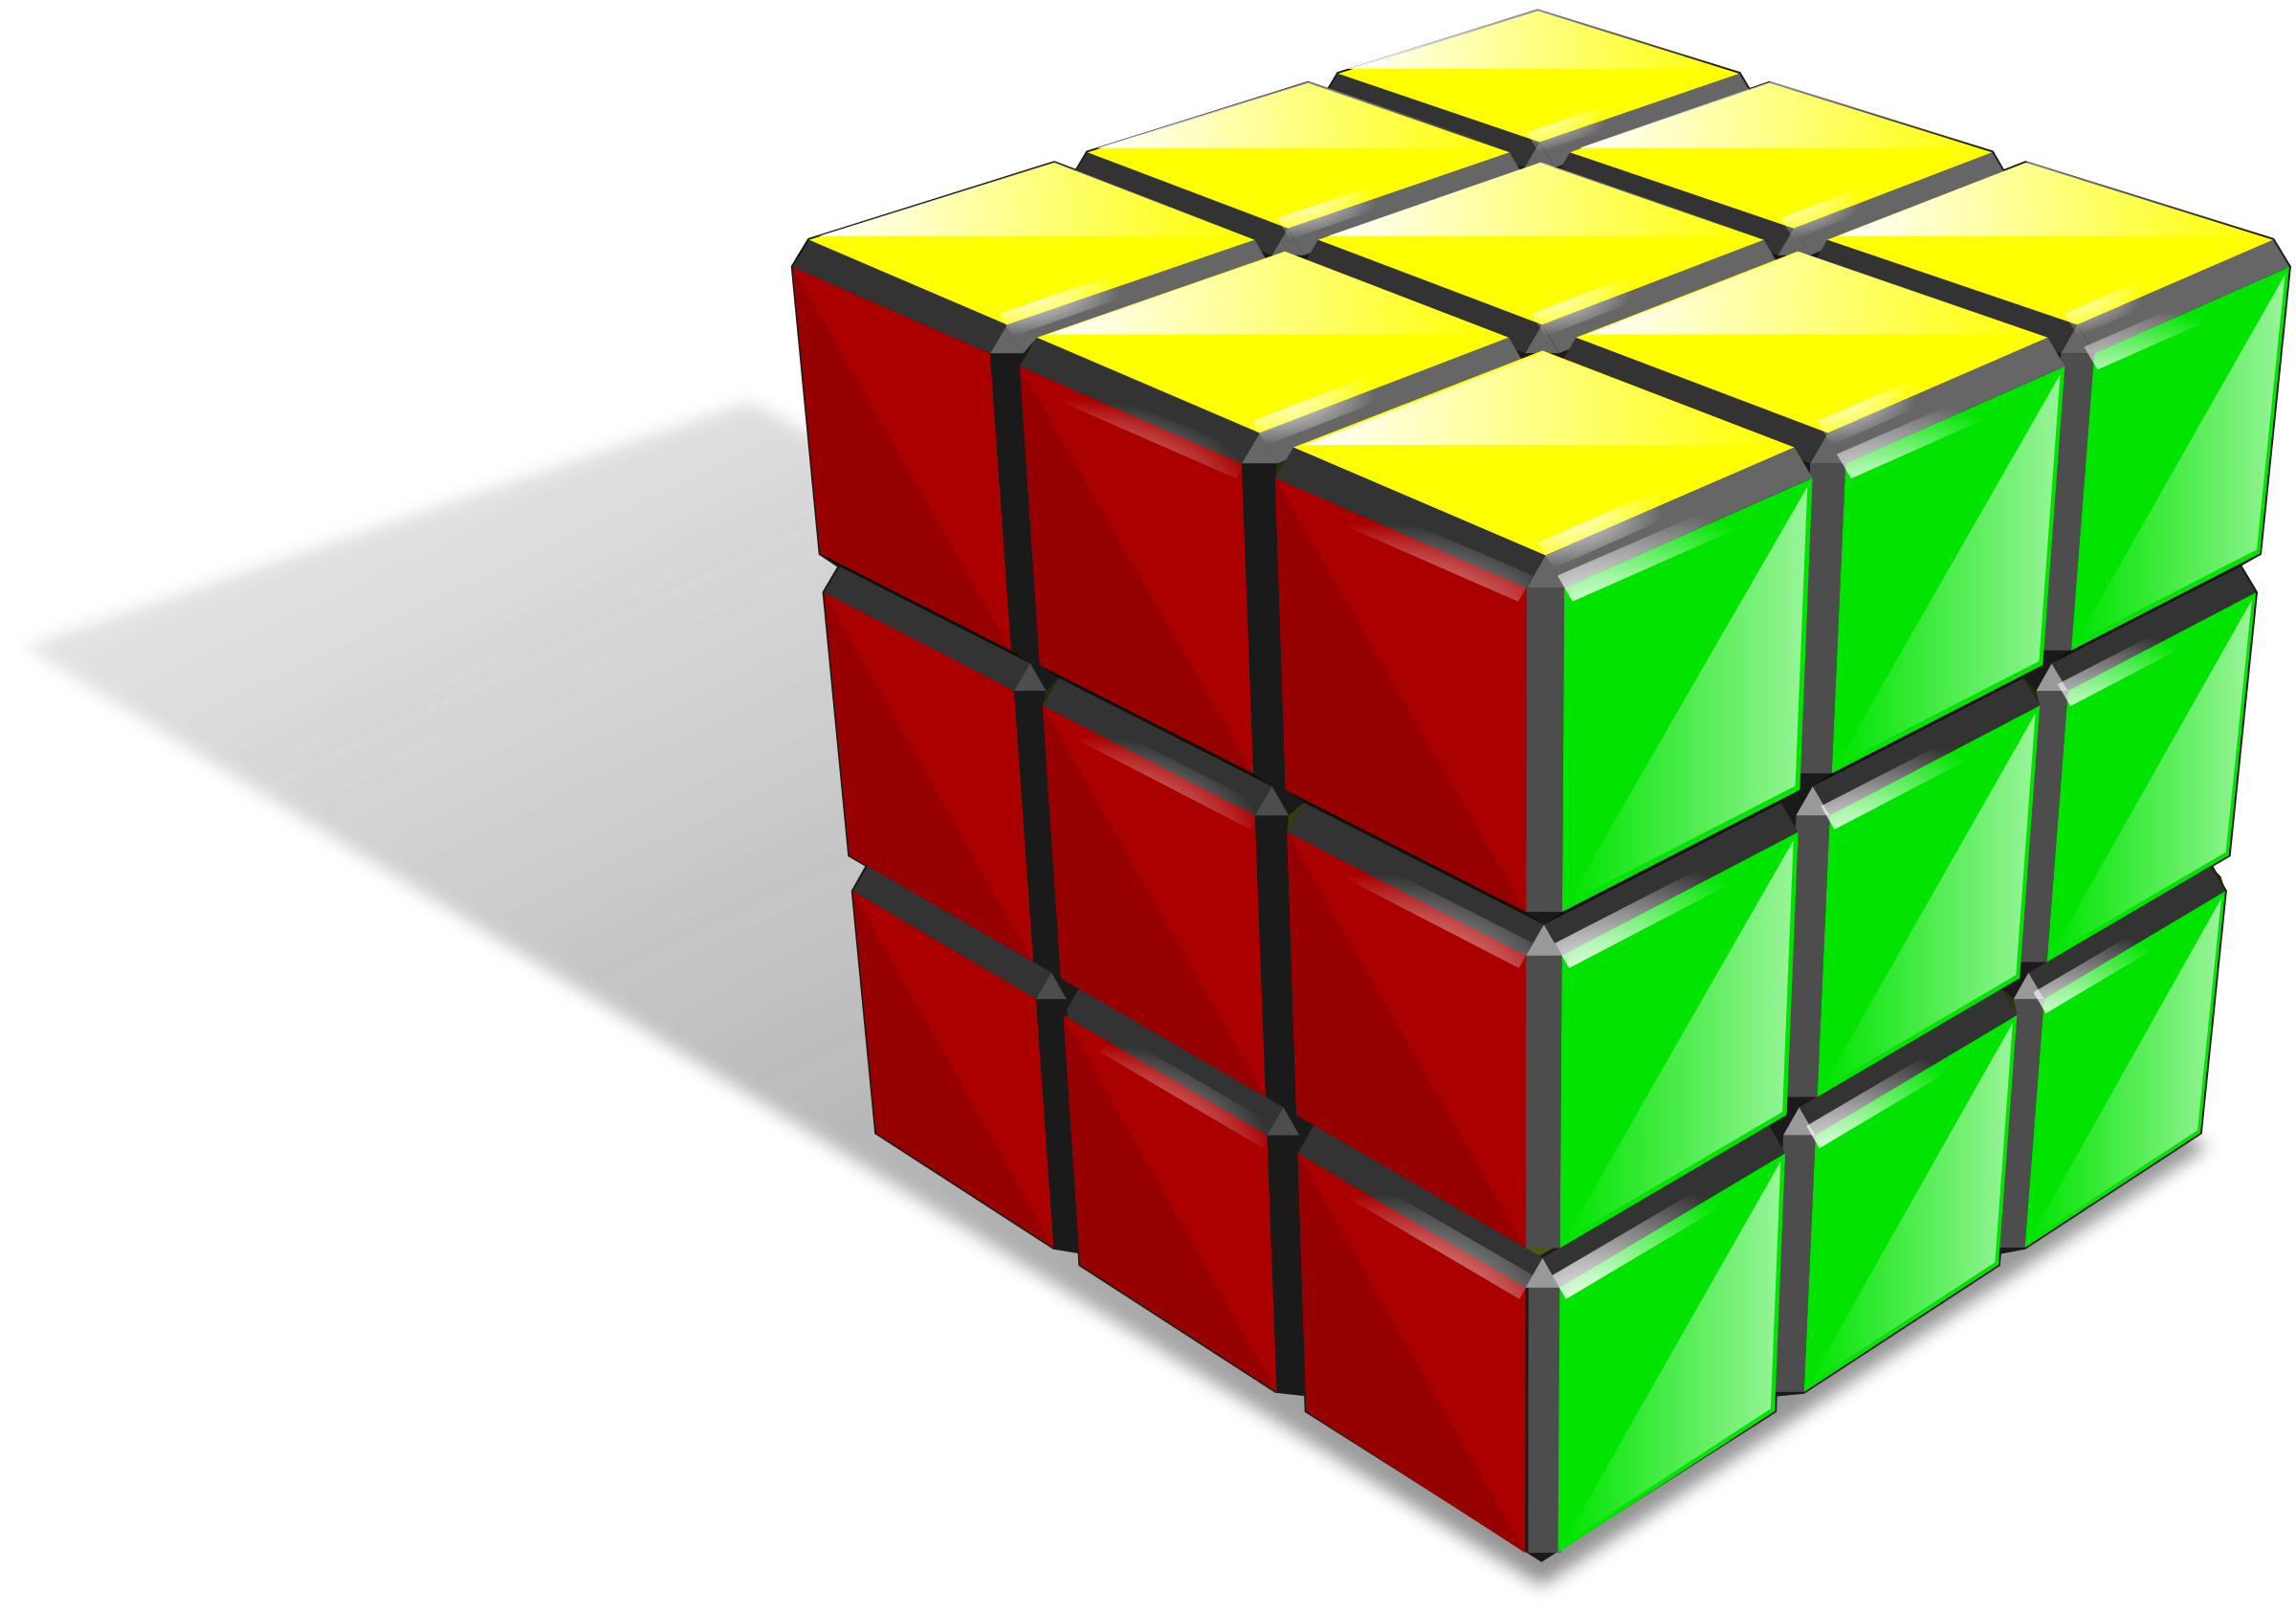 3D Cube Vector Png image #47051